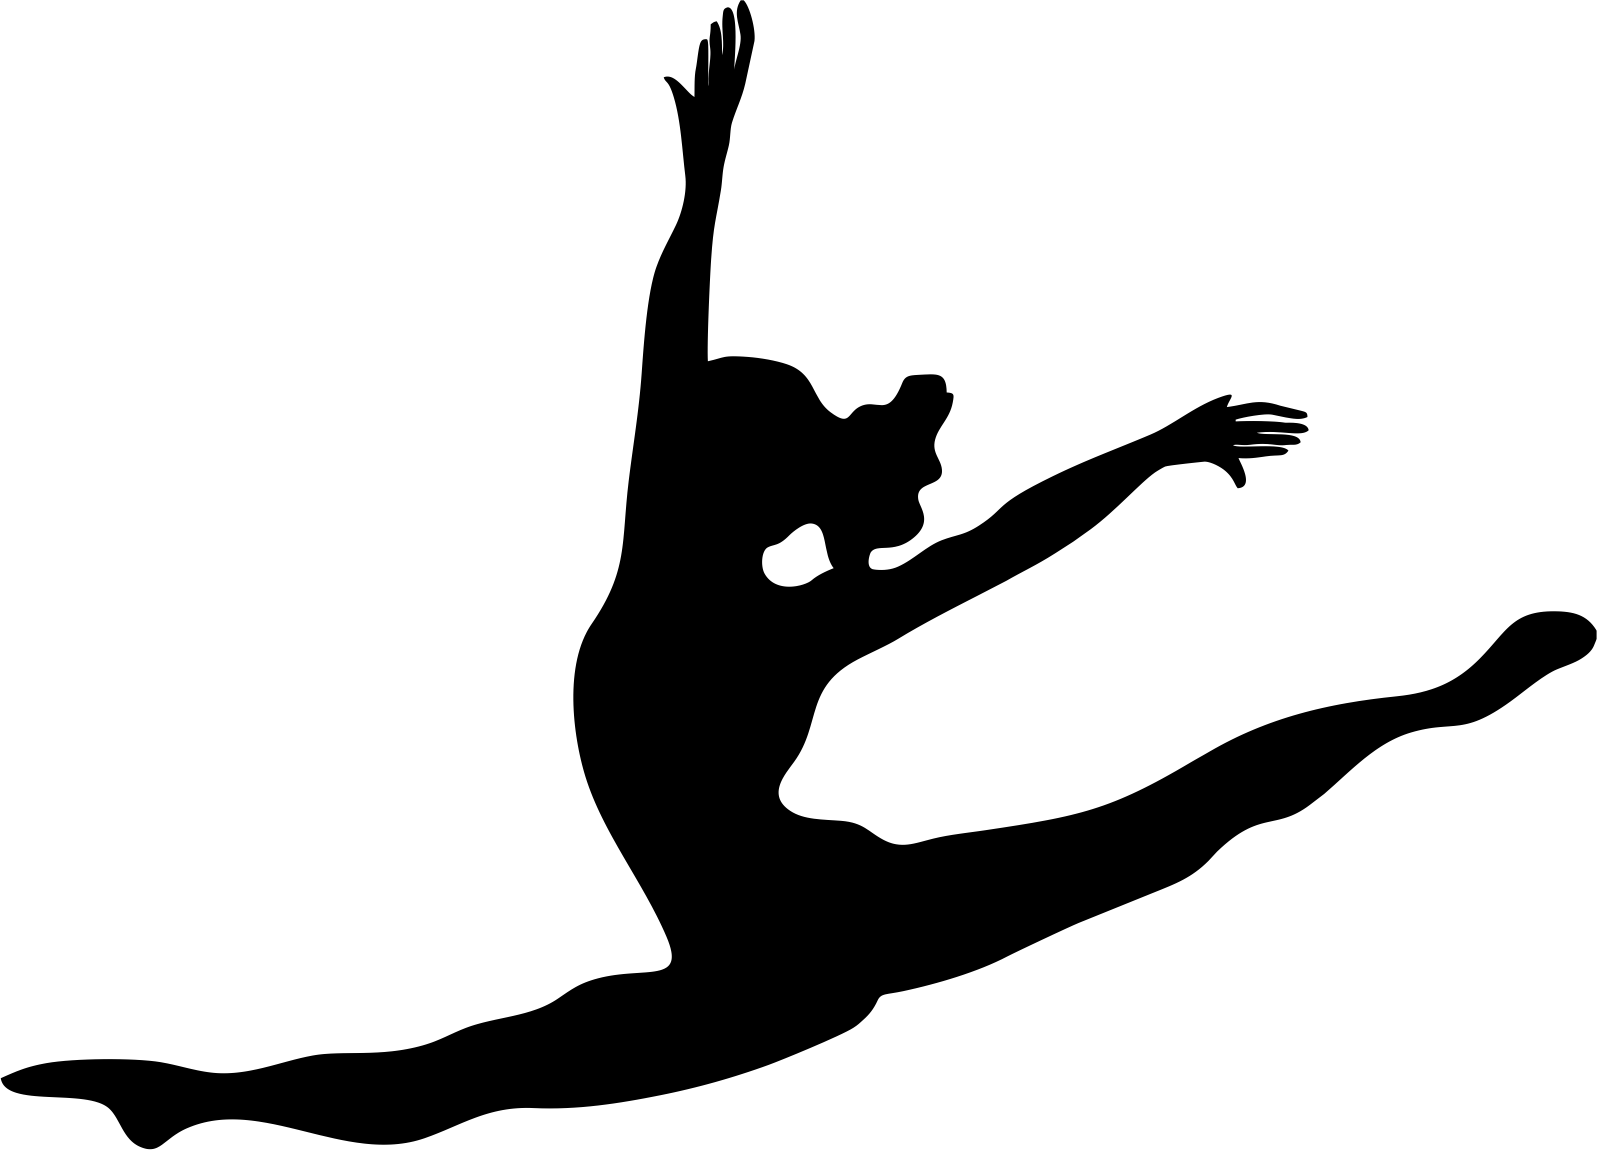 Acro clip. Dancer black and